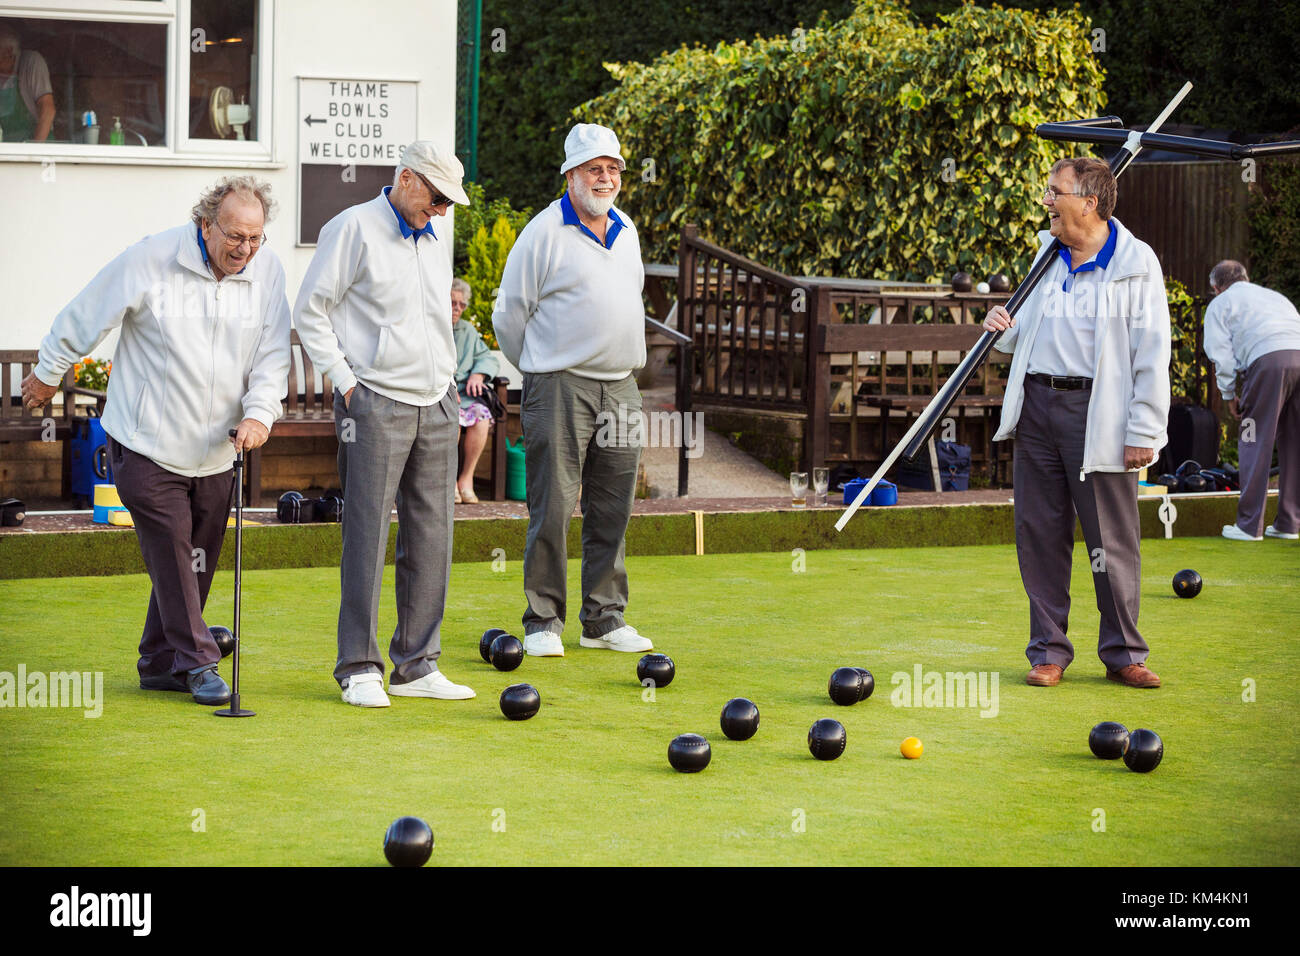 Four men on the lawn bowls green, one wearing an umpire's coat, at an end. - Stock Image